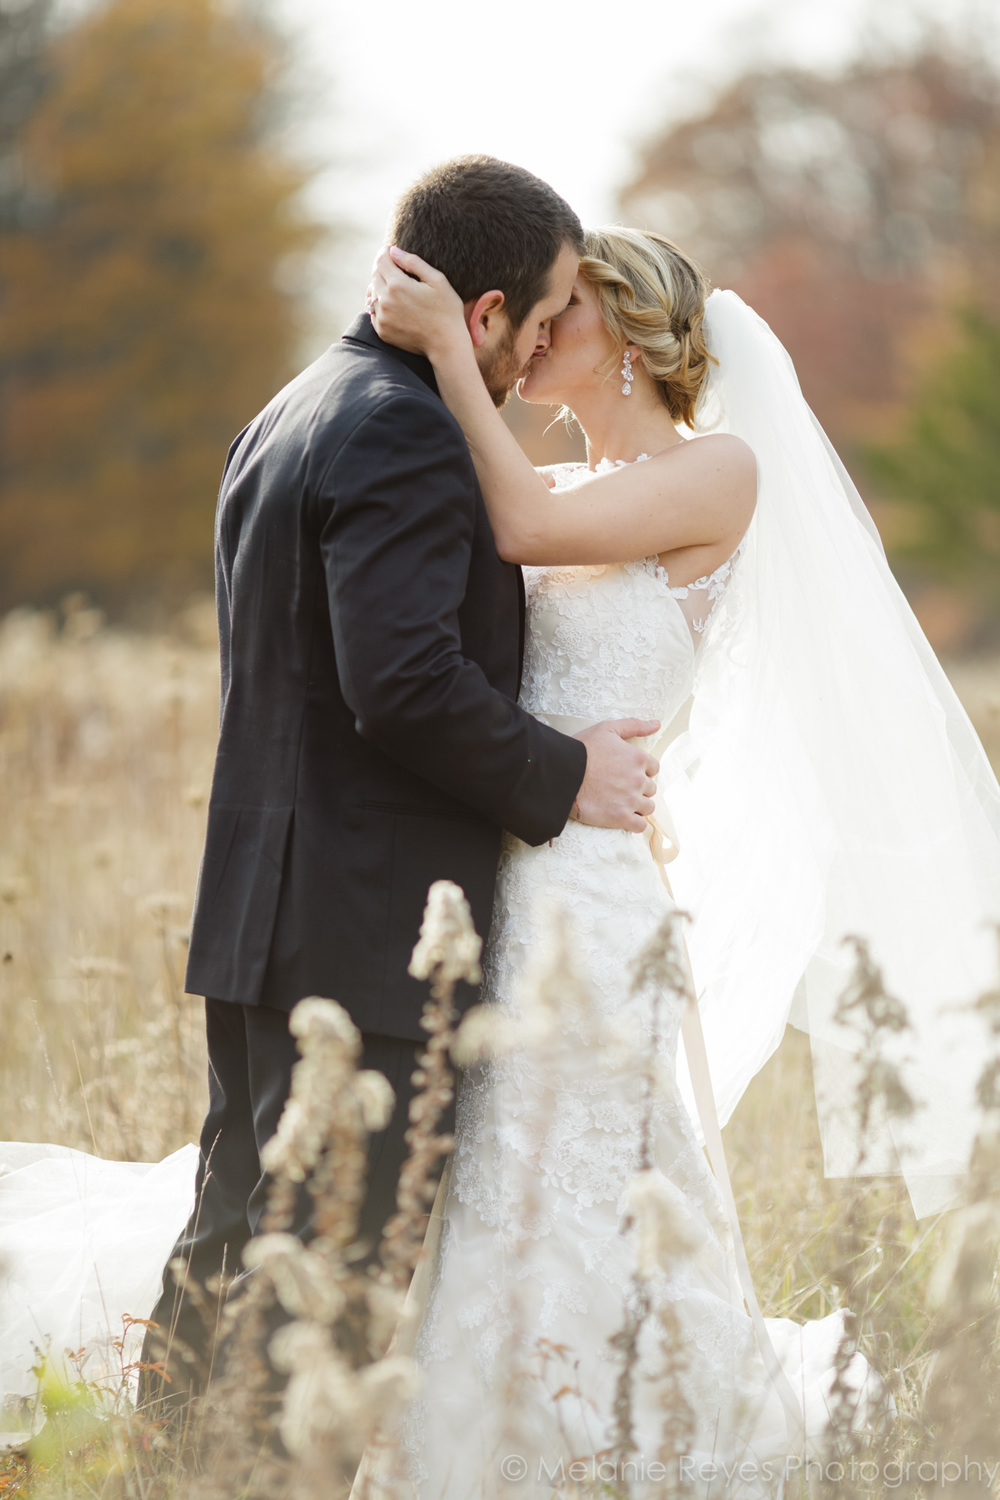 Mike & Claire. 11/08/2014